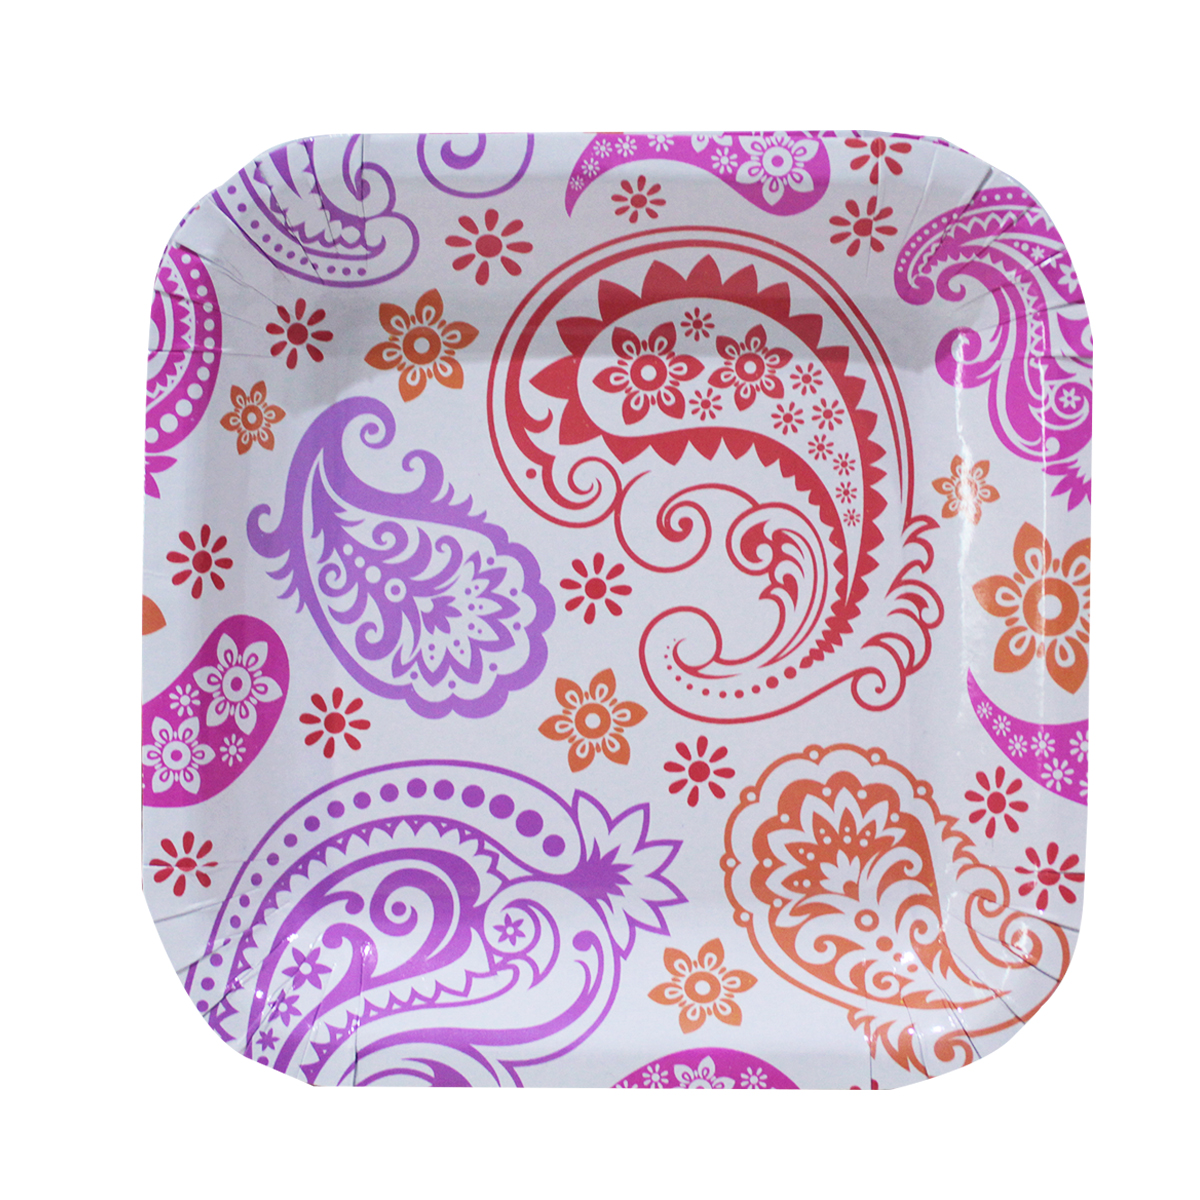 Paisley Patterned Lunch Plates